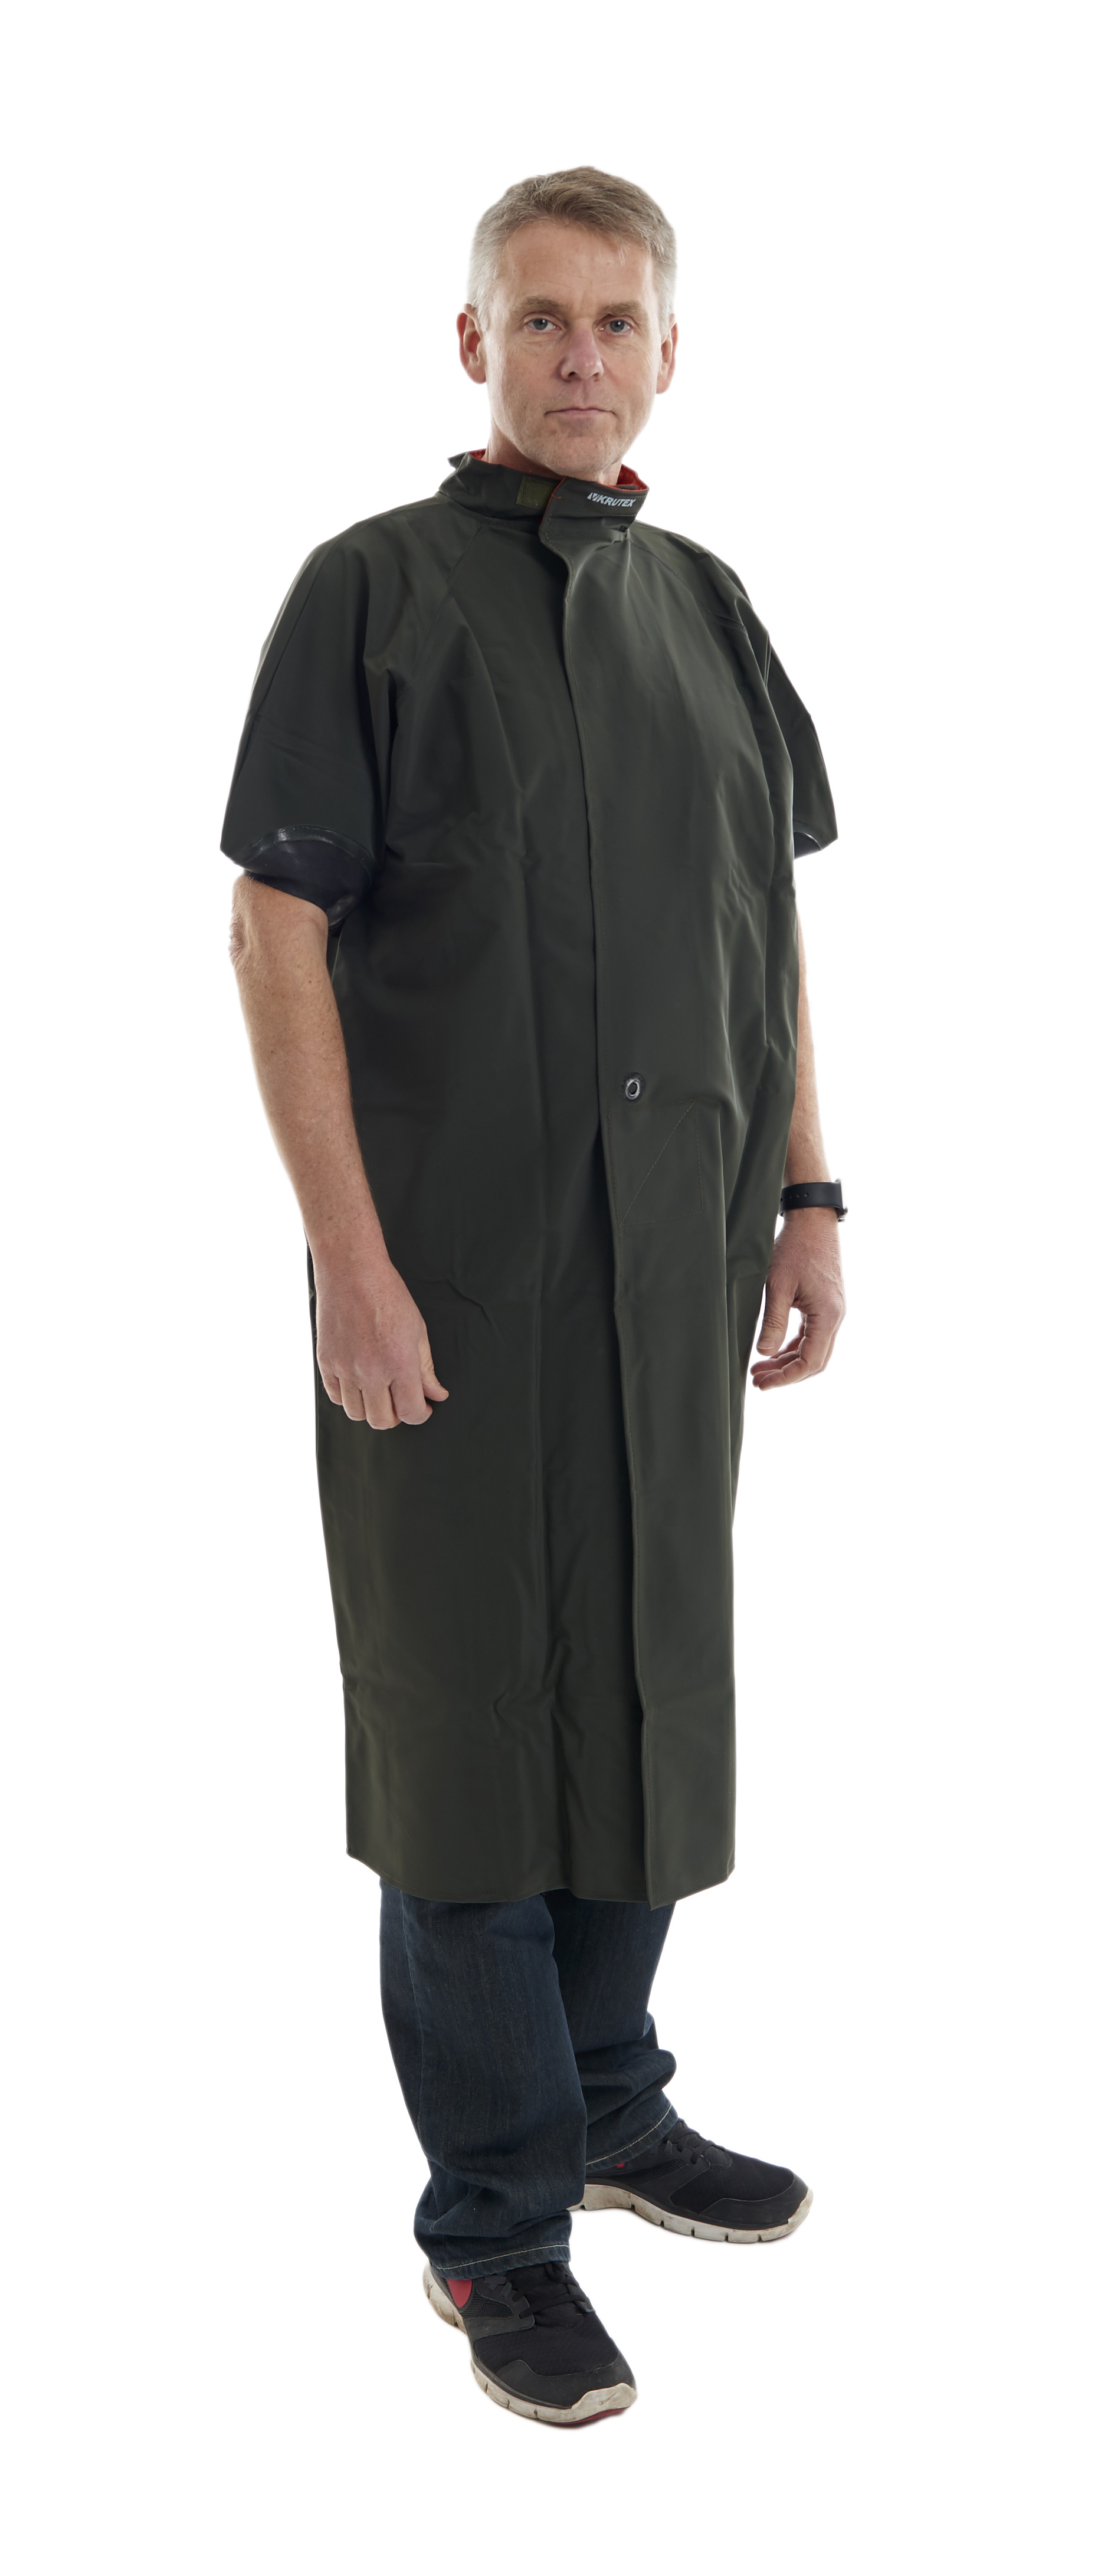 KRUTEX obstetric gown with velcro 150 cm